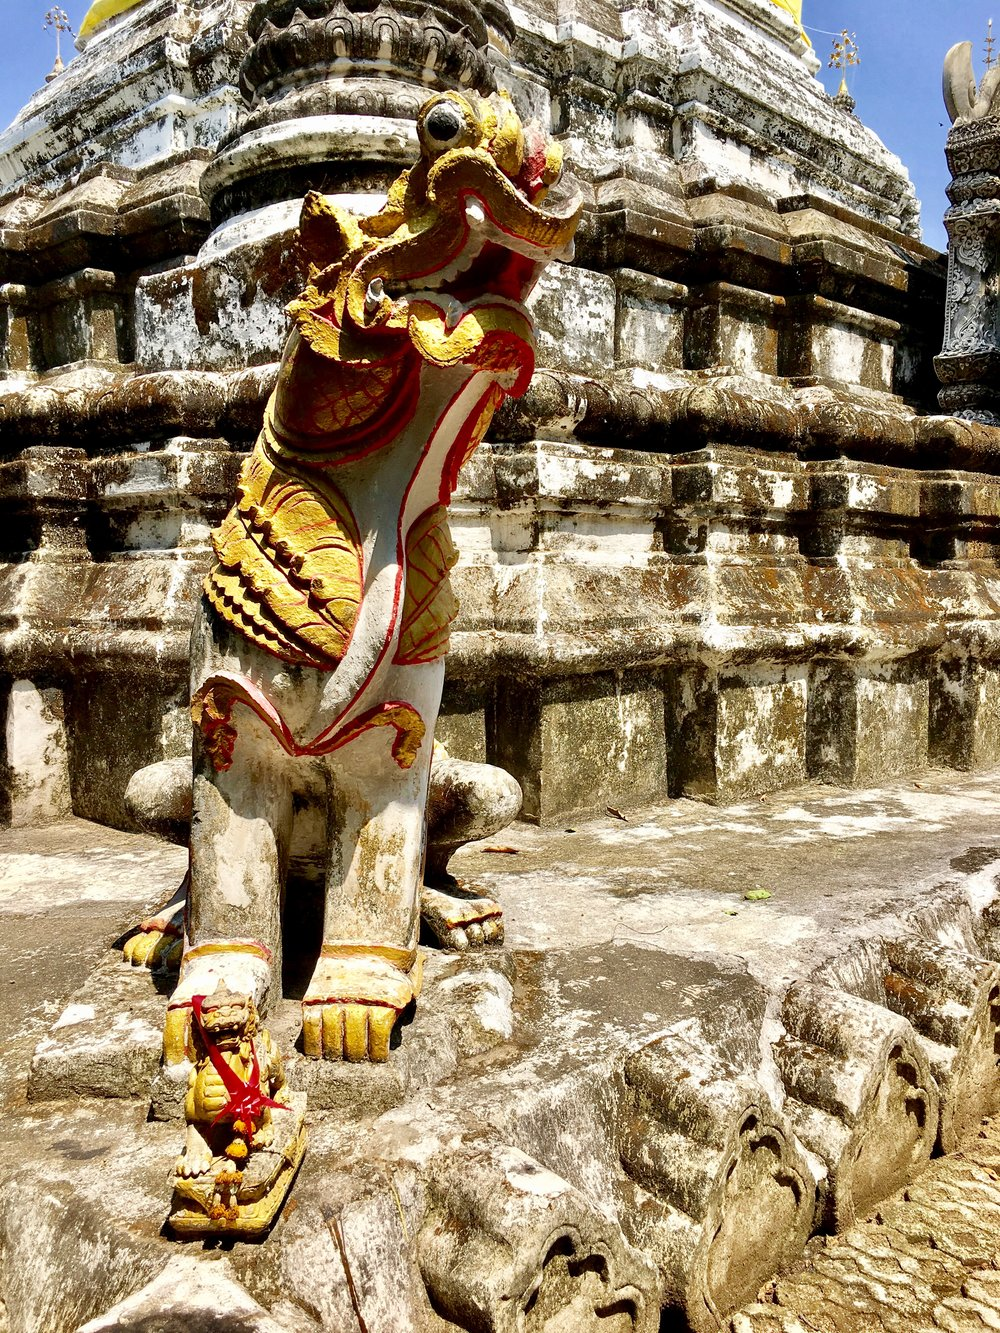 A half-lion, half-dragon creature from Burmese mythology known as a chinthe helps protect the pagoda